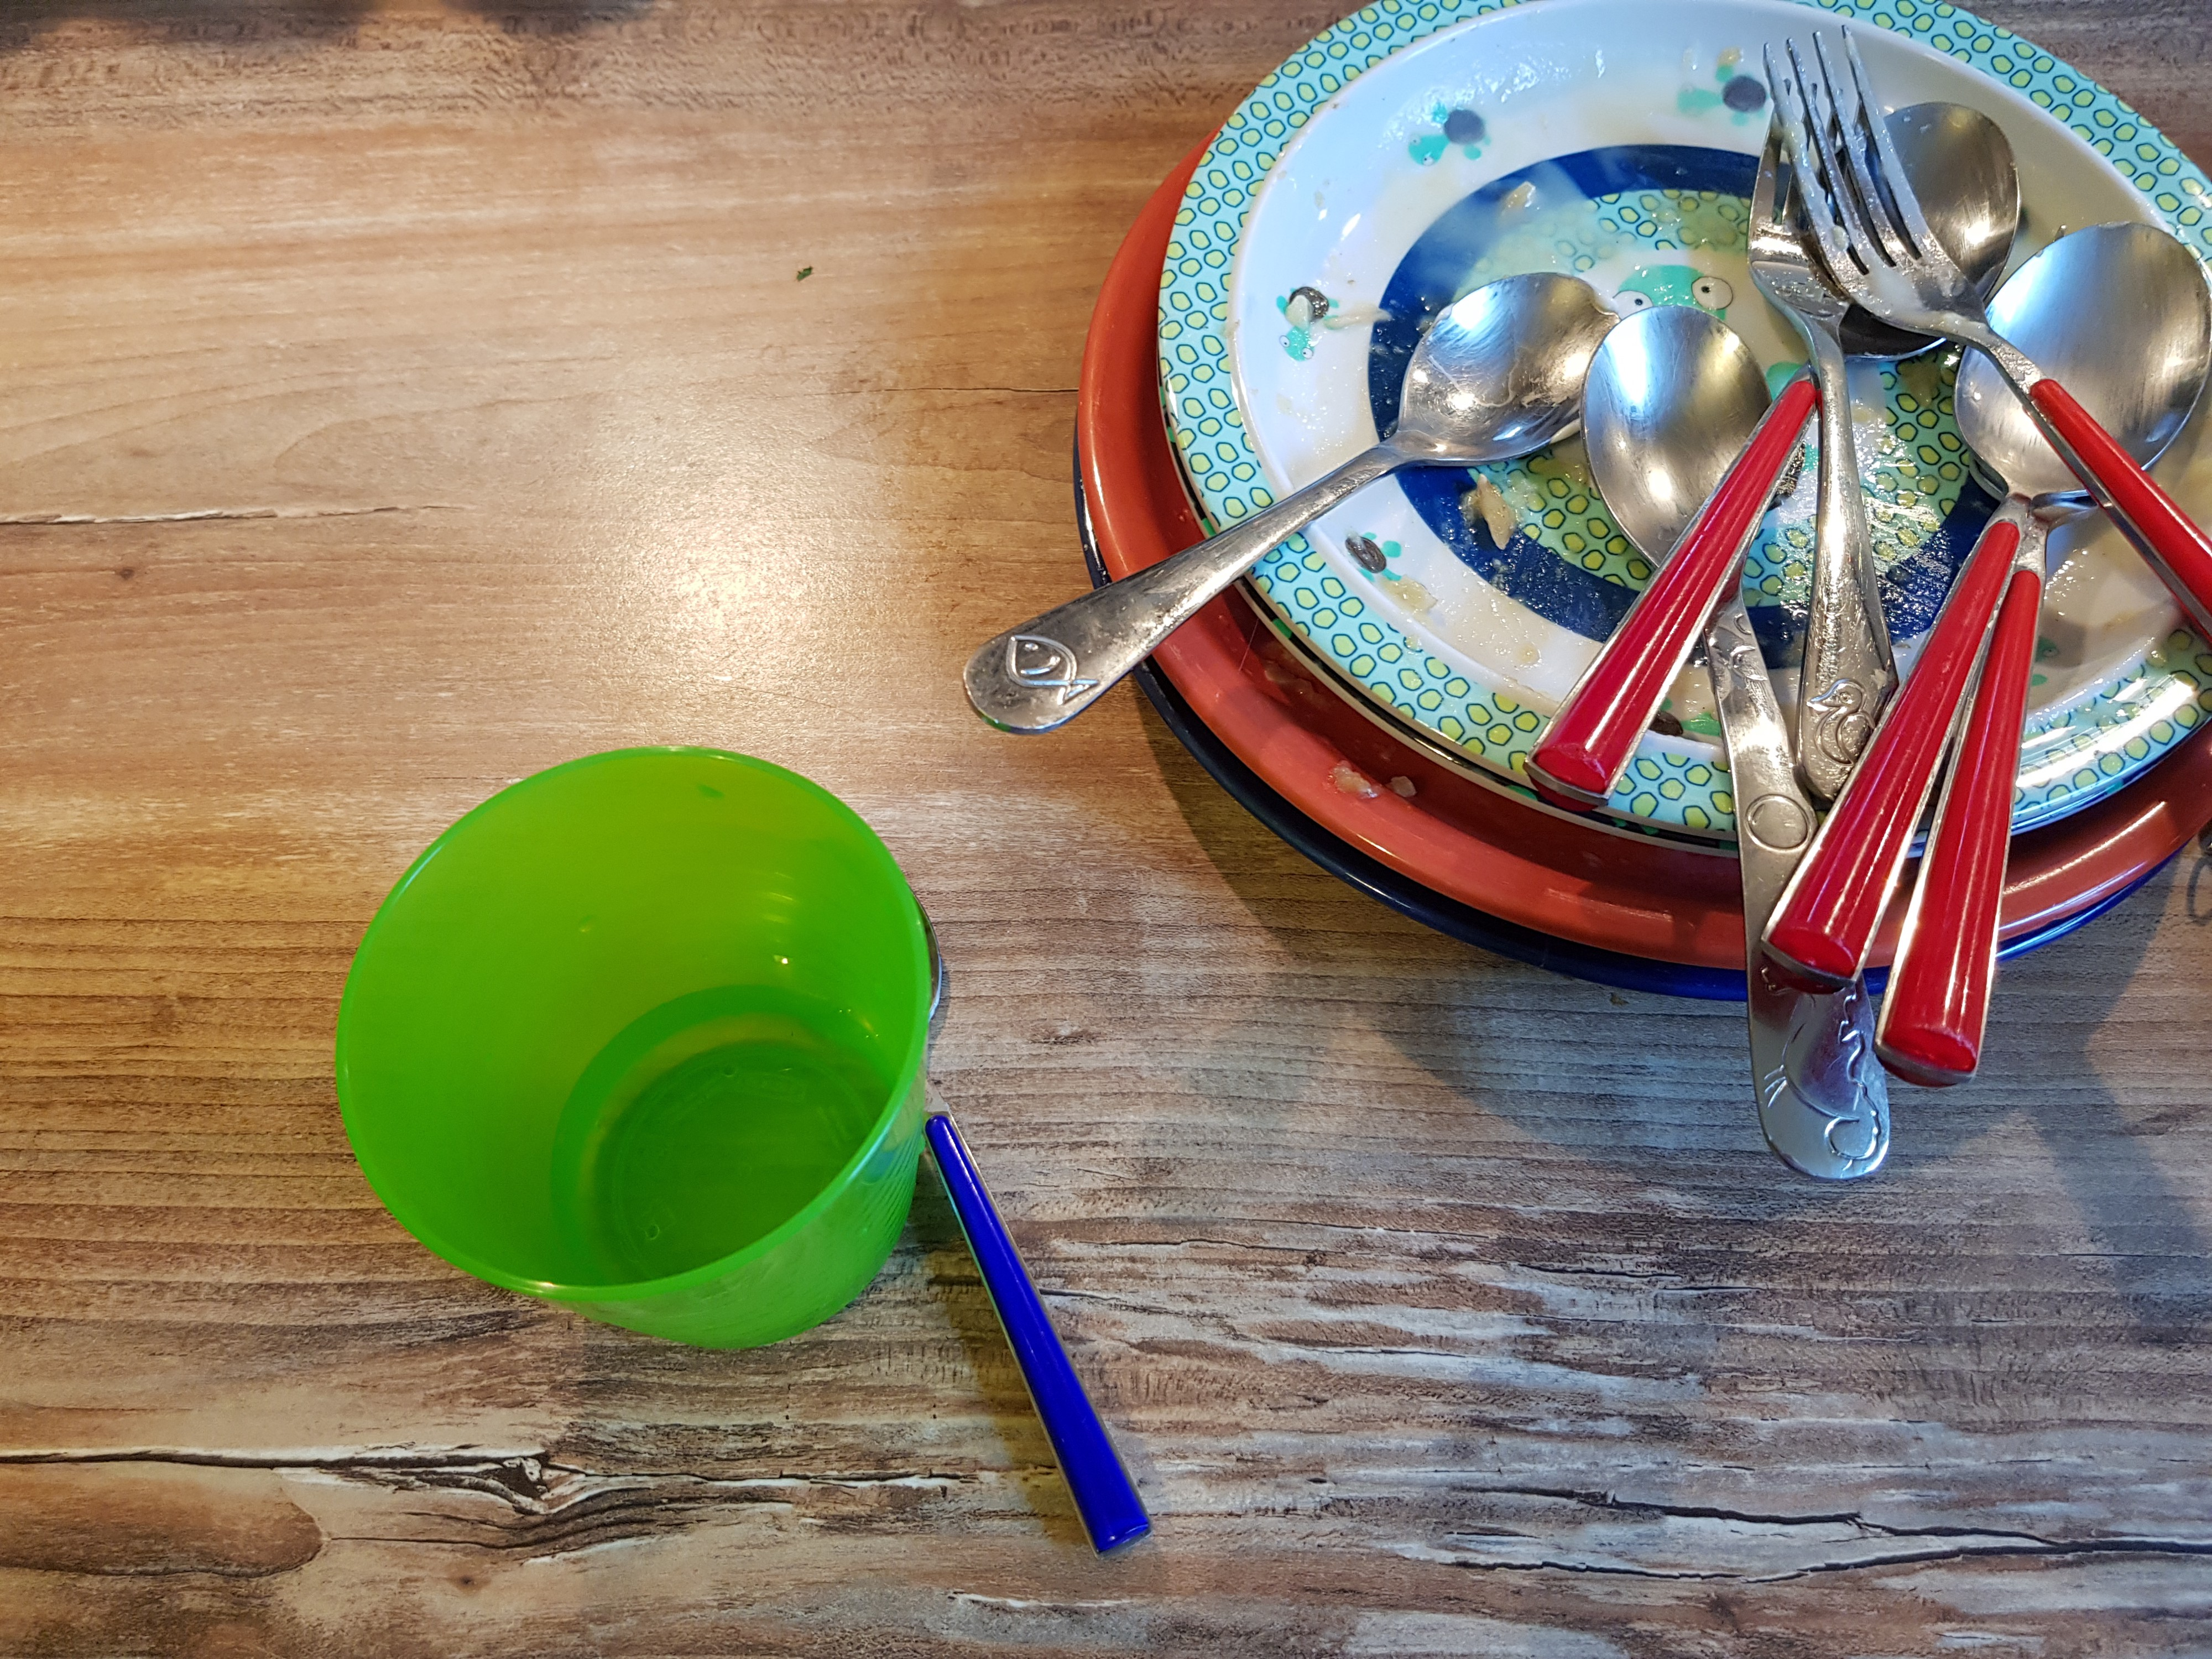 A plastic cup and a pile of plates and cutlery on a wooden countertop.